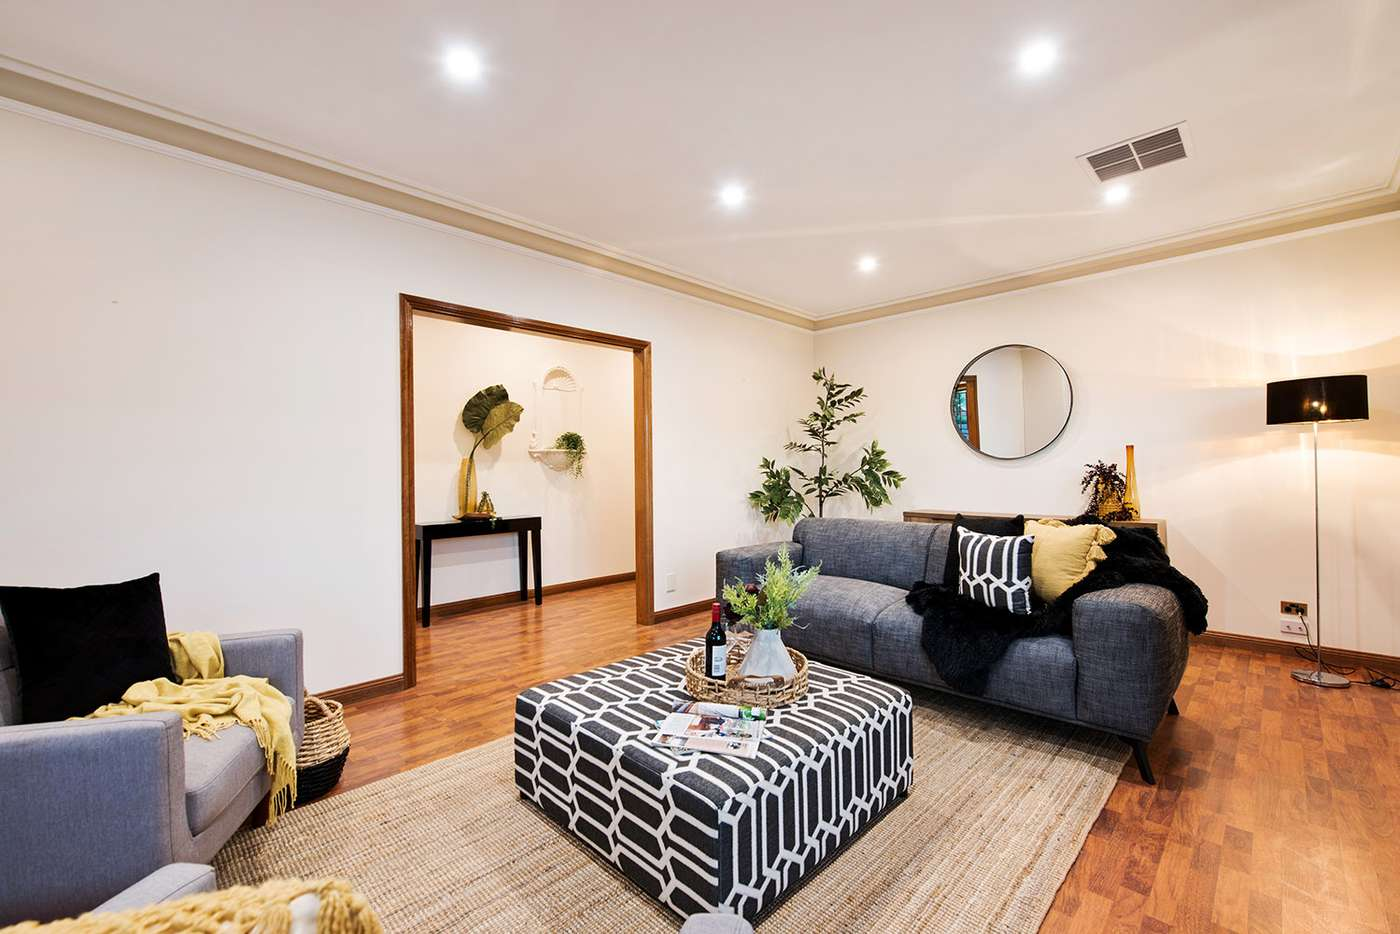 Fifth view of Homely house listing, 8 Alexander St, Evandale SA 5069